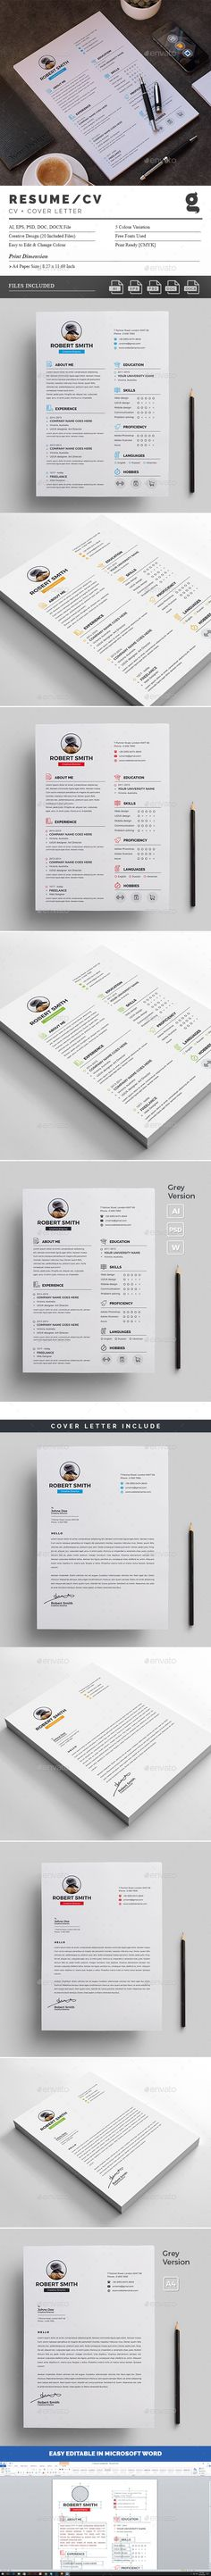 Clean Resume Download%0A Resume  u     Cover Letter   Resume cover letters  Cover letter template and Resume  cv